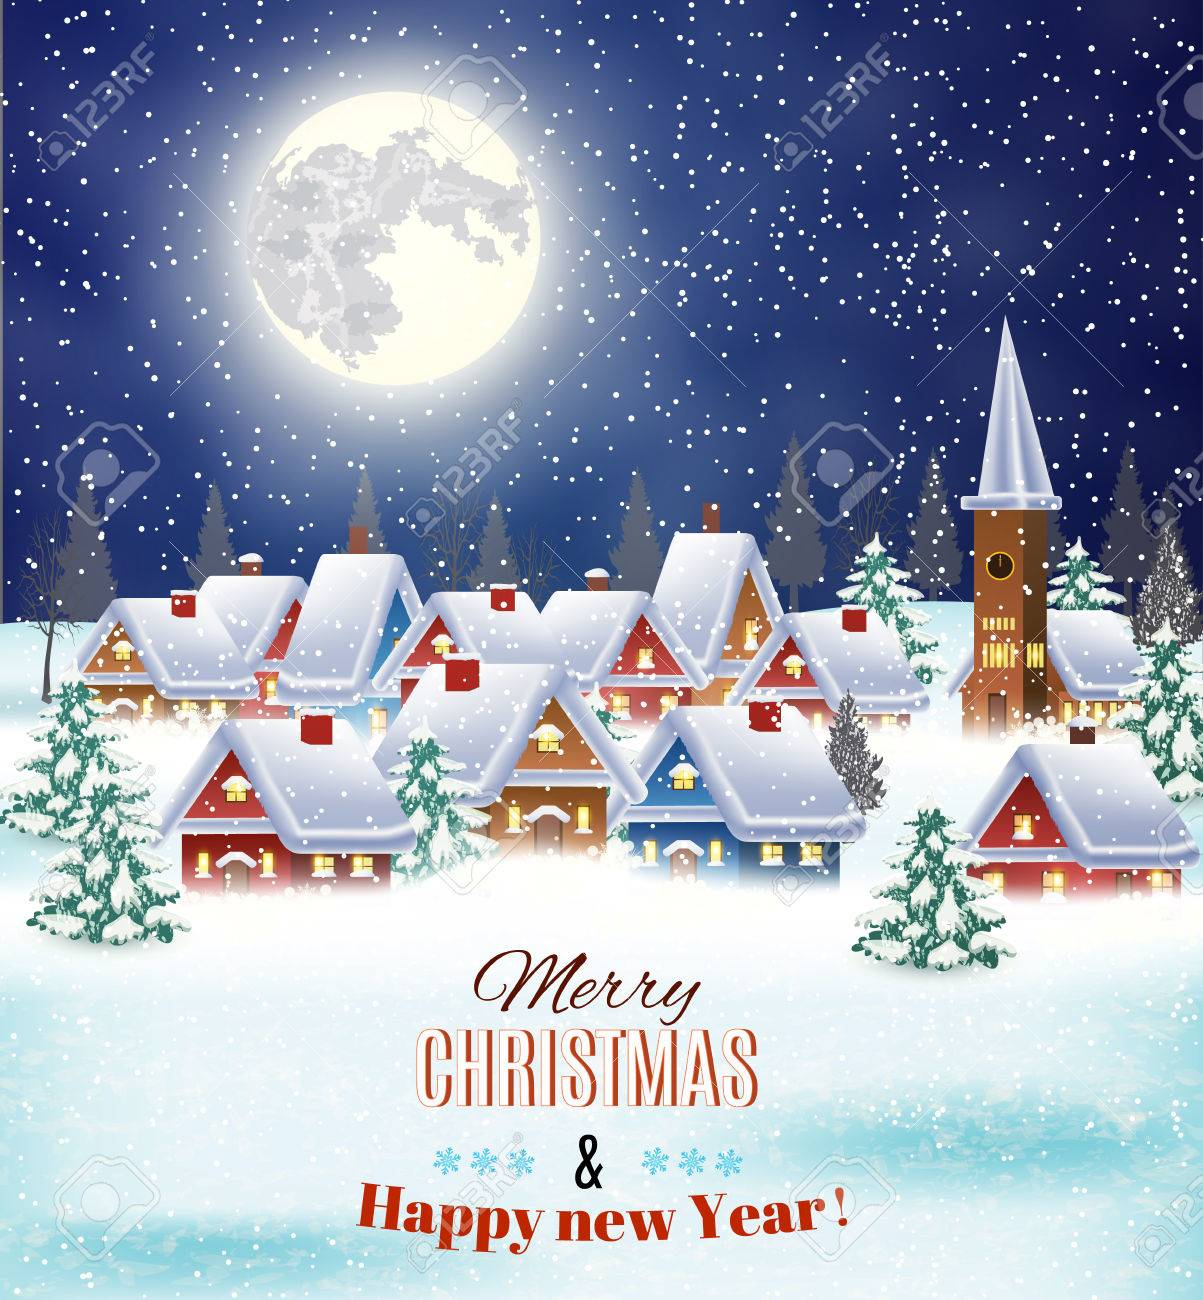 New year and Christmas winter village night landscape background. Vector illustration. concept for greeting or postal card - 46551362